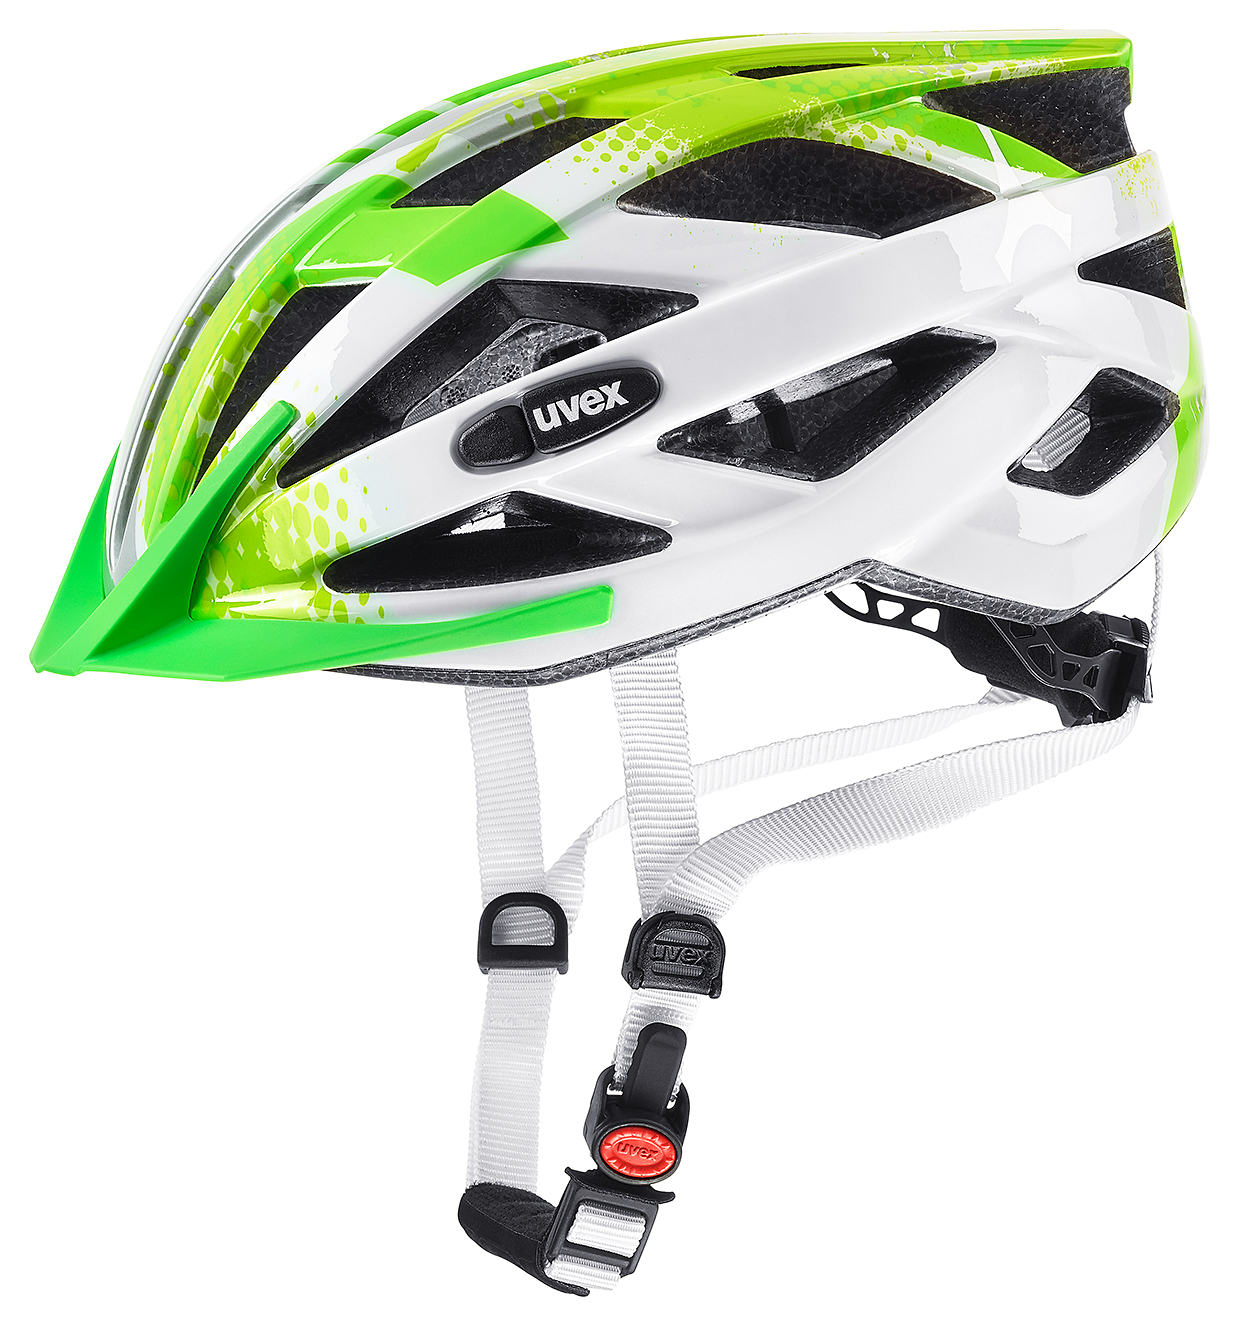 Uvex Air Wing Kinder Fahrrad Helm Gr. 52-57cm green white 2019